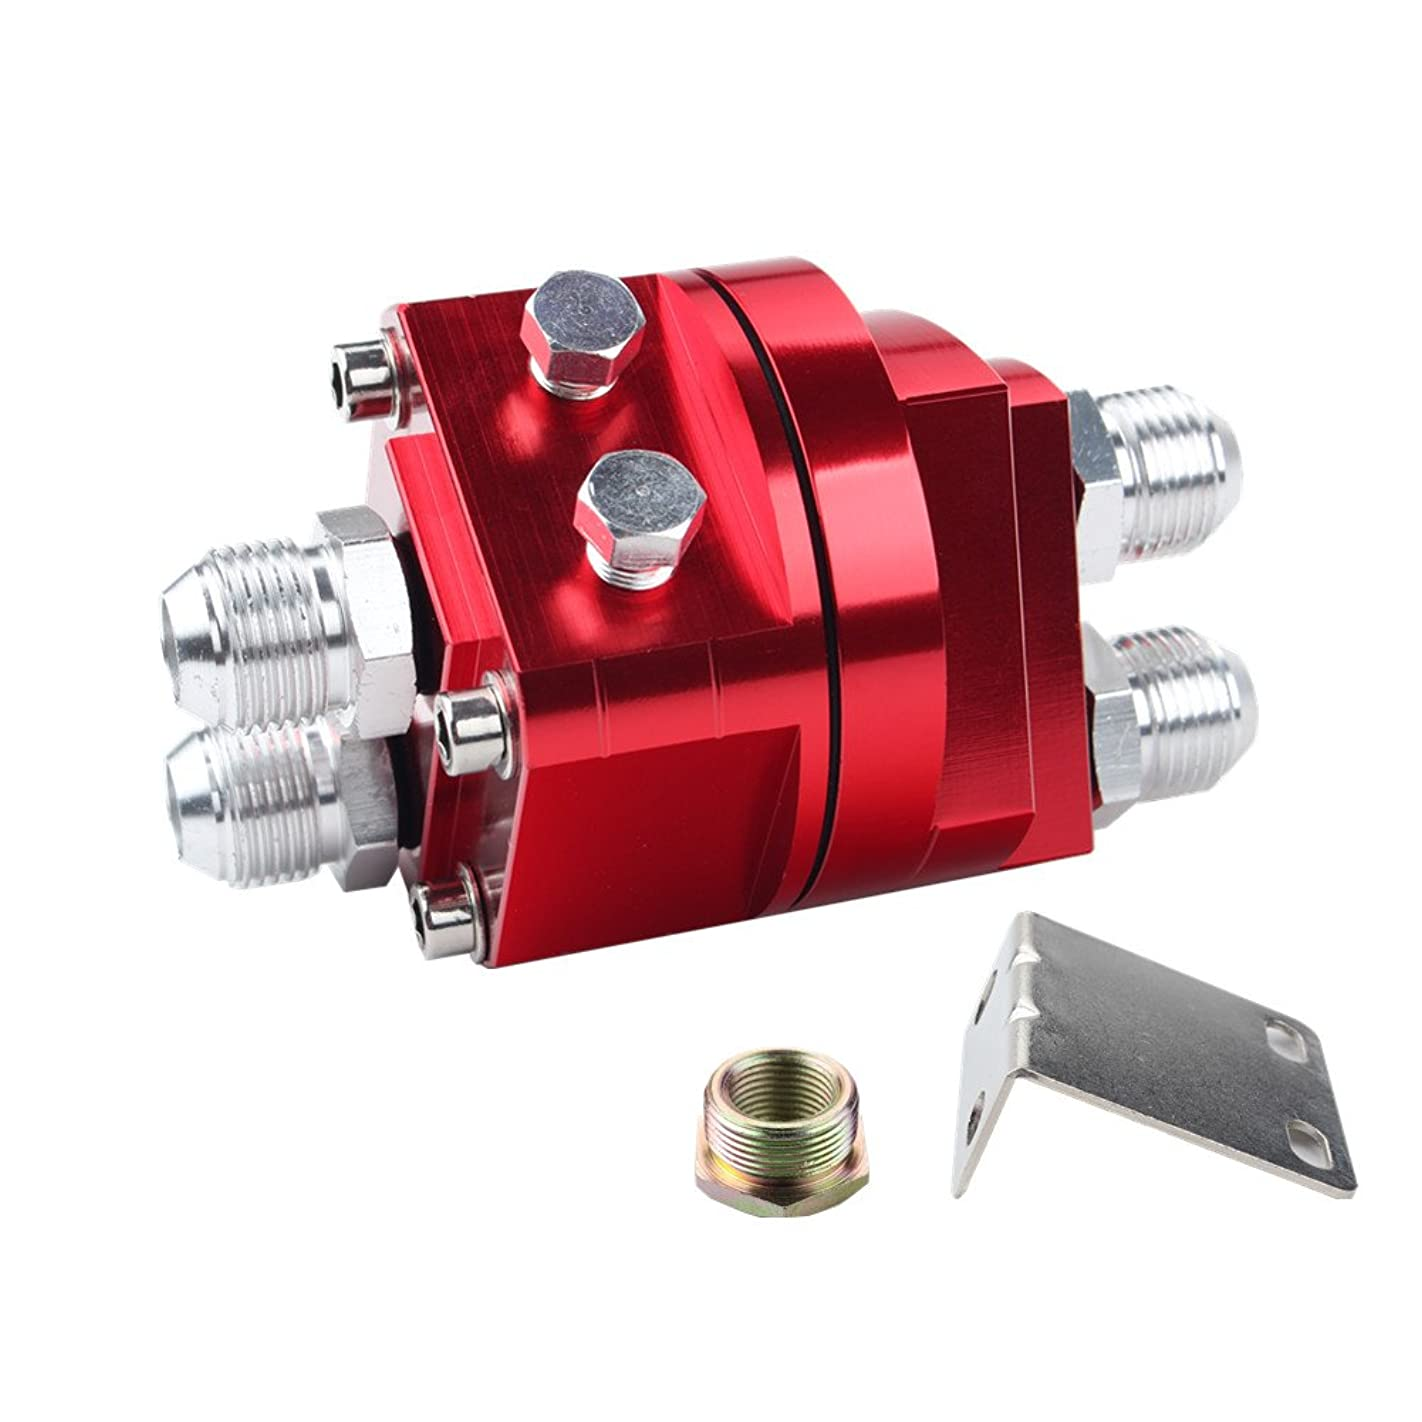 Dewhel OIL Filter Relocation Male Sandwich Fitting Adapter Kit 3/4x16 20x1.5(red) y39391669094